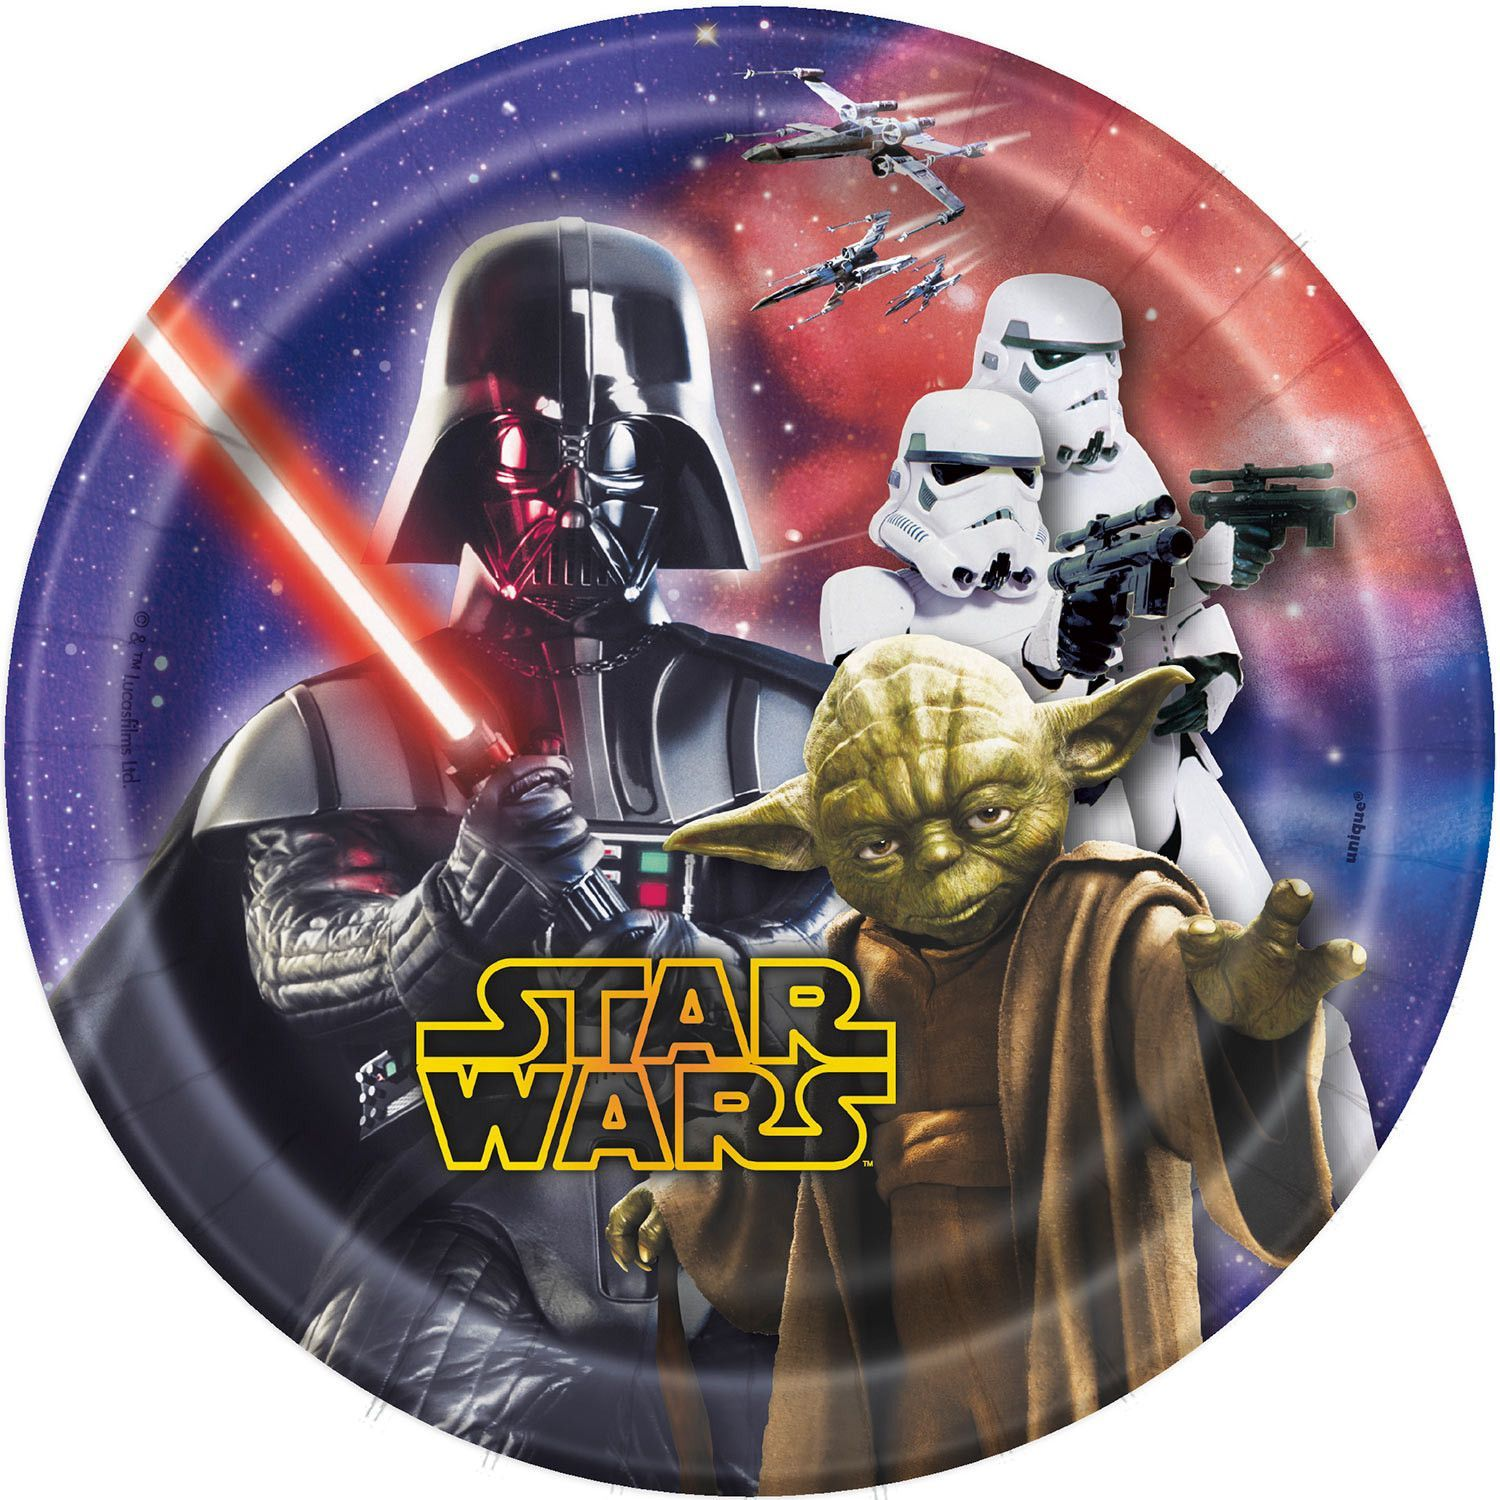 Star Wars 7 Inch Paper Plates [8 Per Pack]  sc 1 st  Pinterest & Star Wars 7 Inch Paper Plates [8 Per Pack] | Themed birthday parties ...